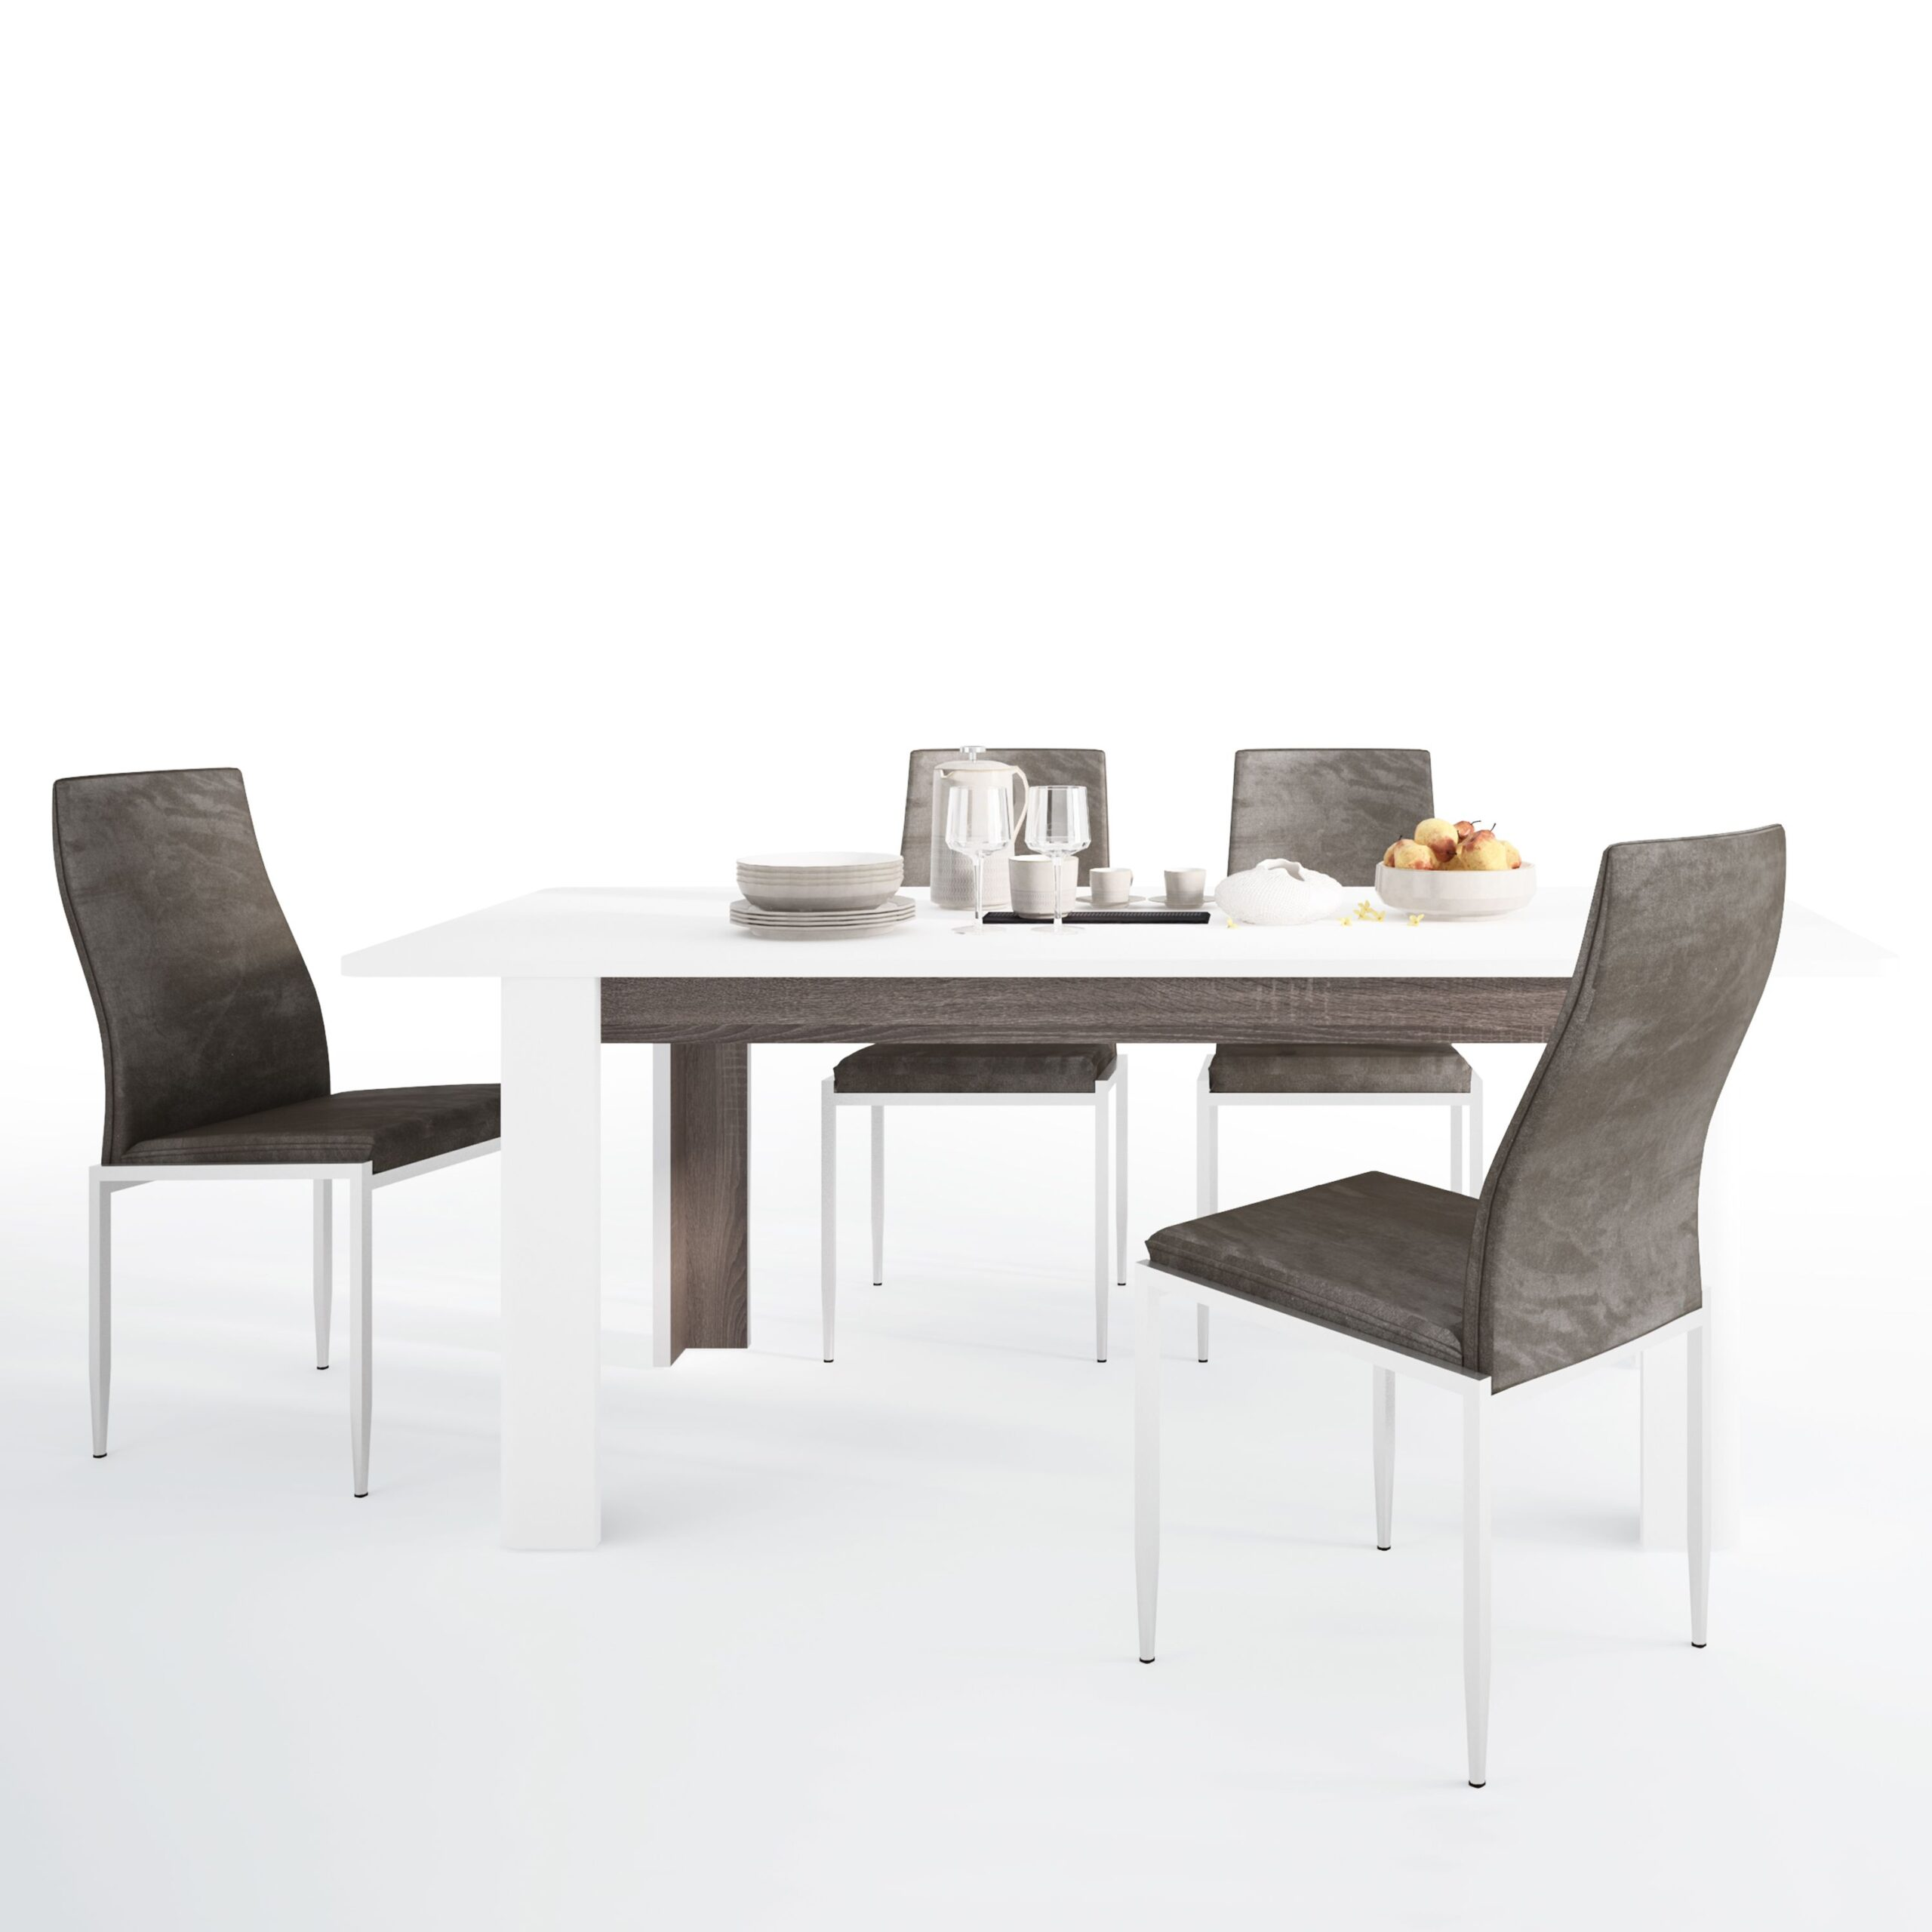 Seals Dining set package Seals Living Extending Dining Table + 6 Lillie High Back Chair Dark Brown